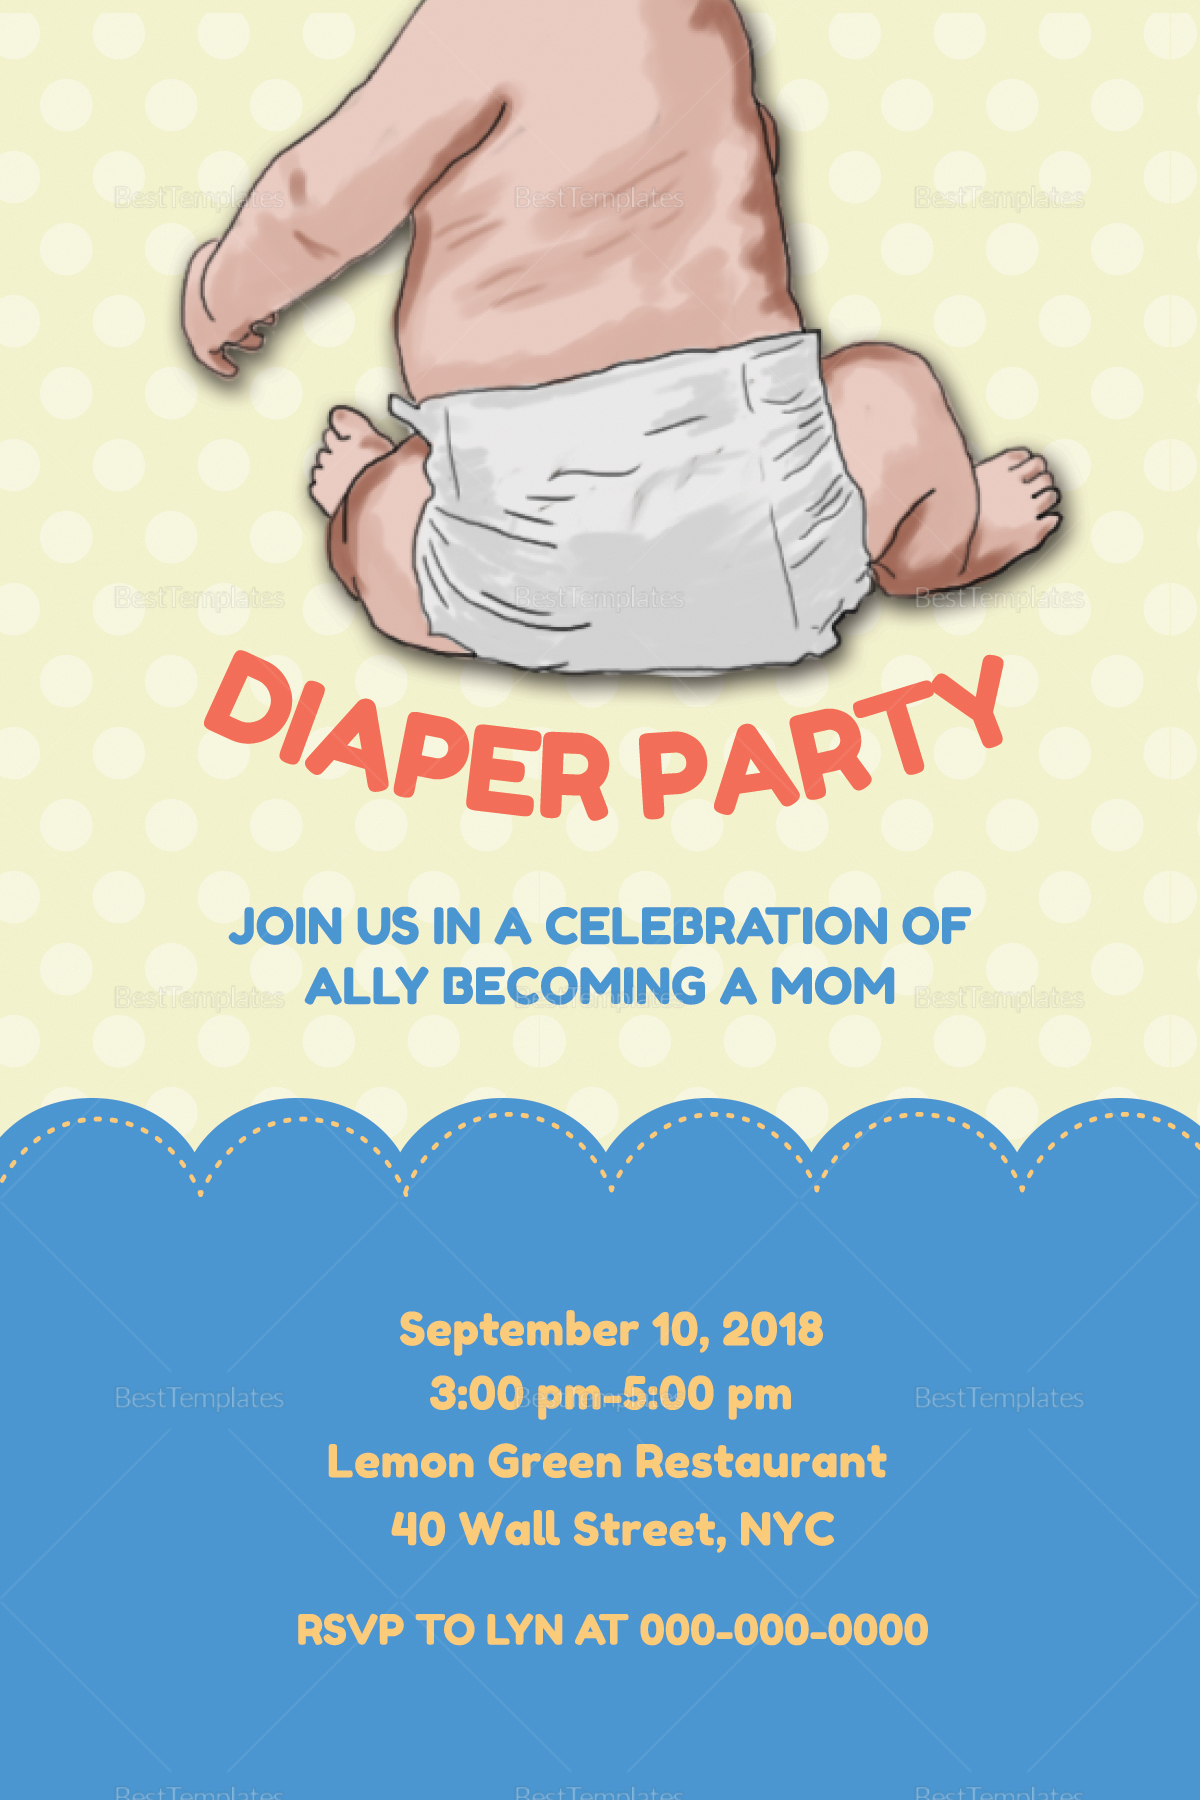 This is an image of Clever Free Printable Diaper Party Invitation Templates